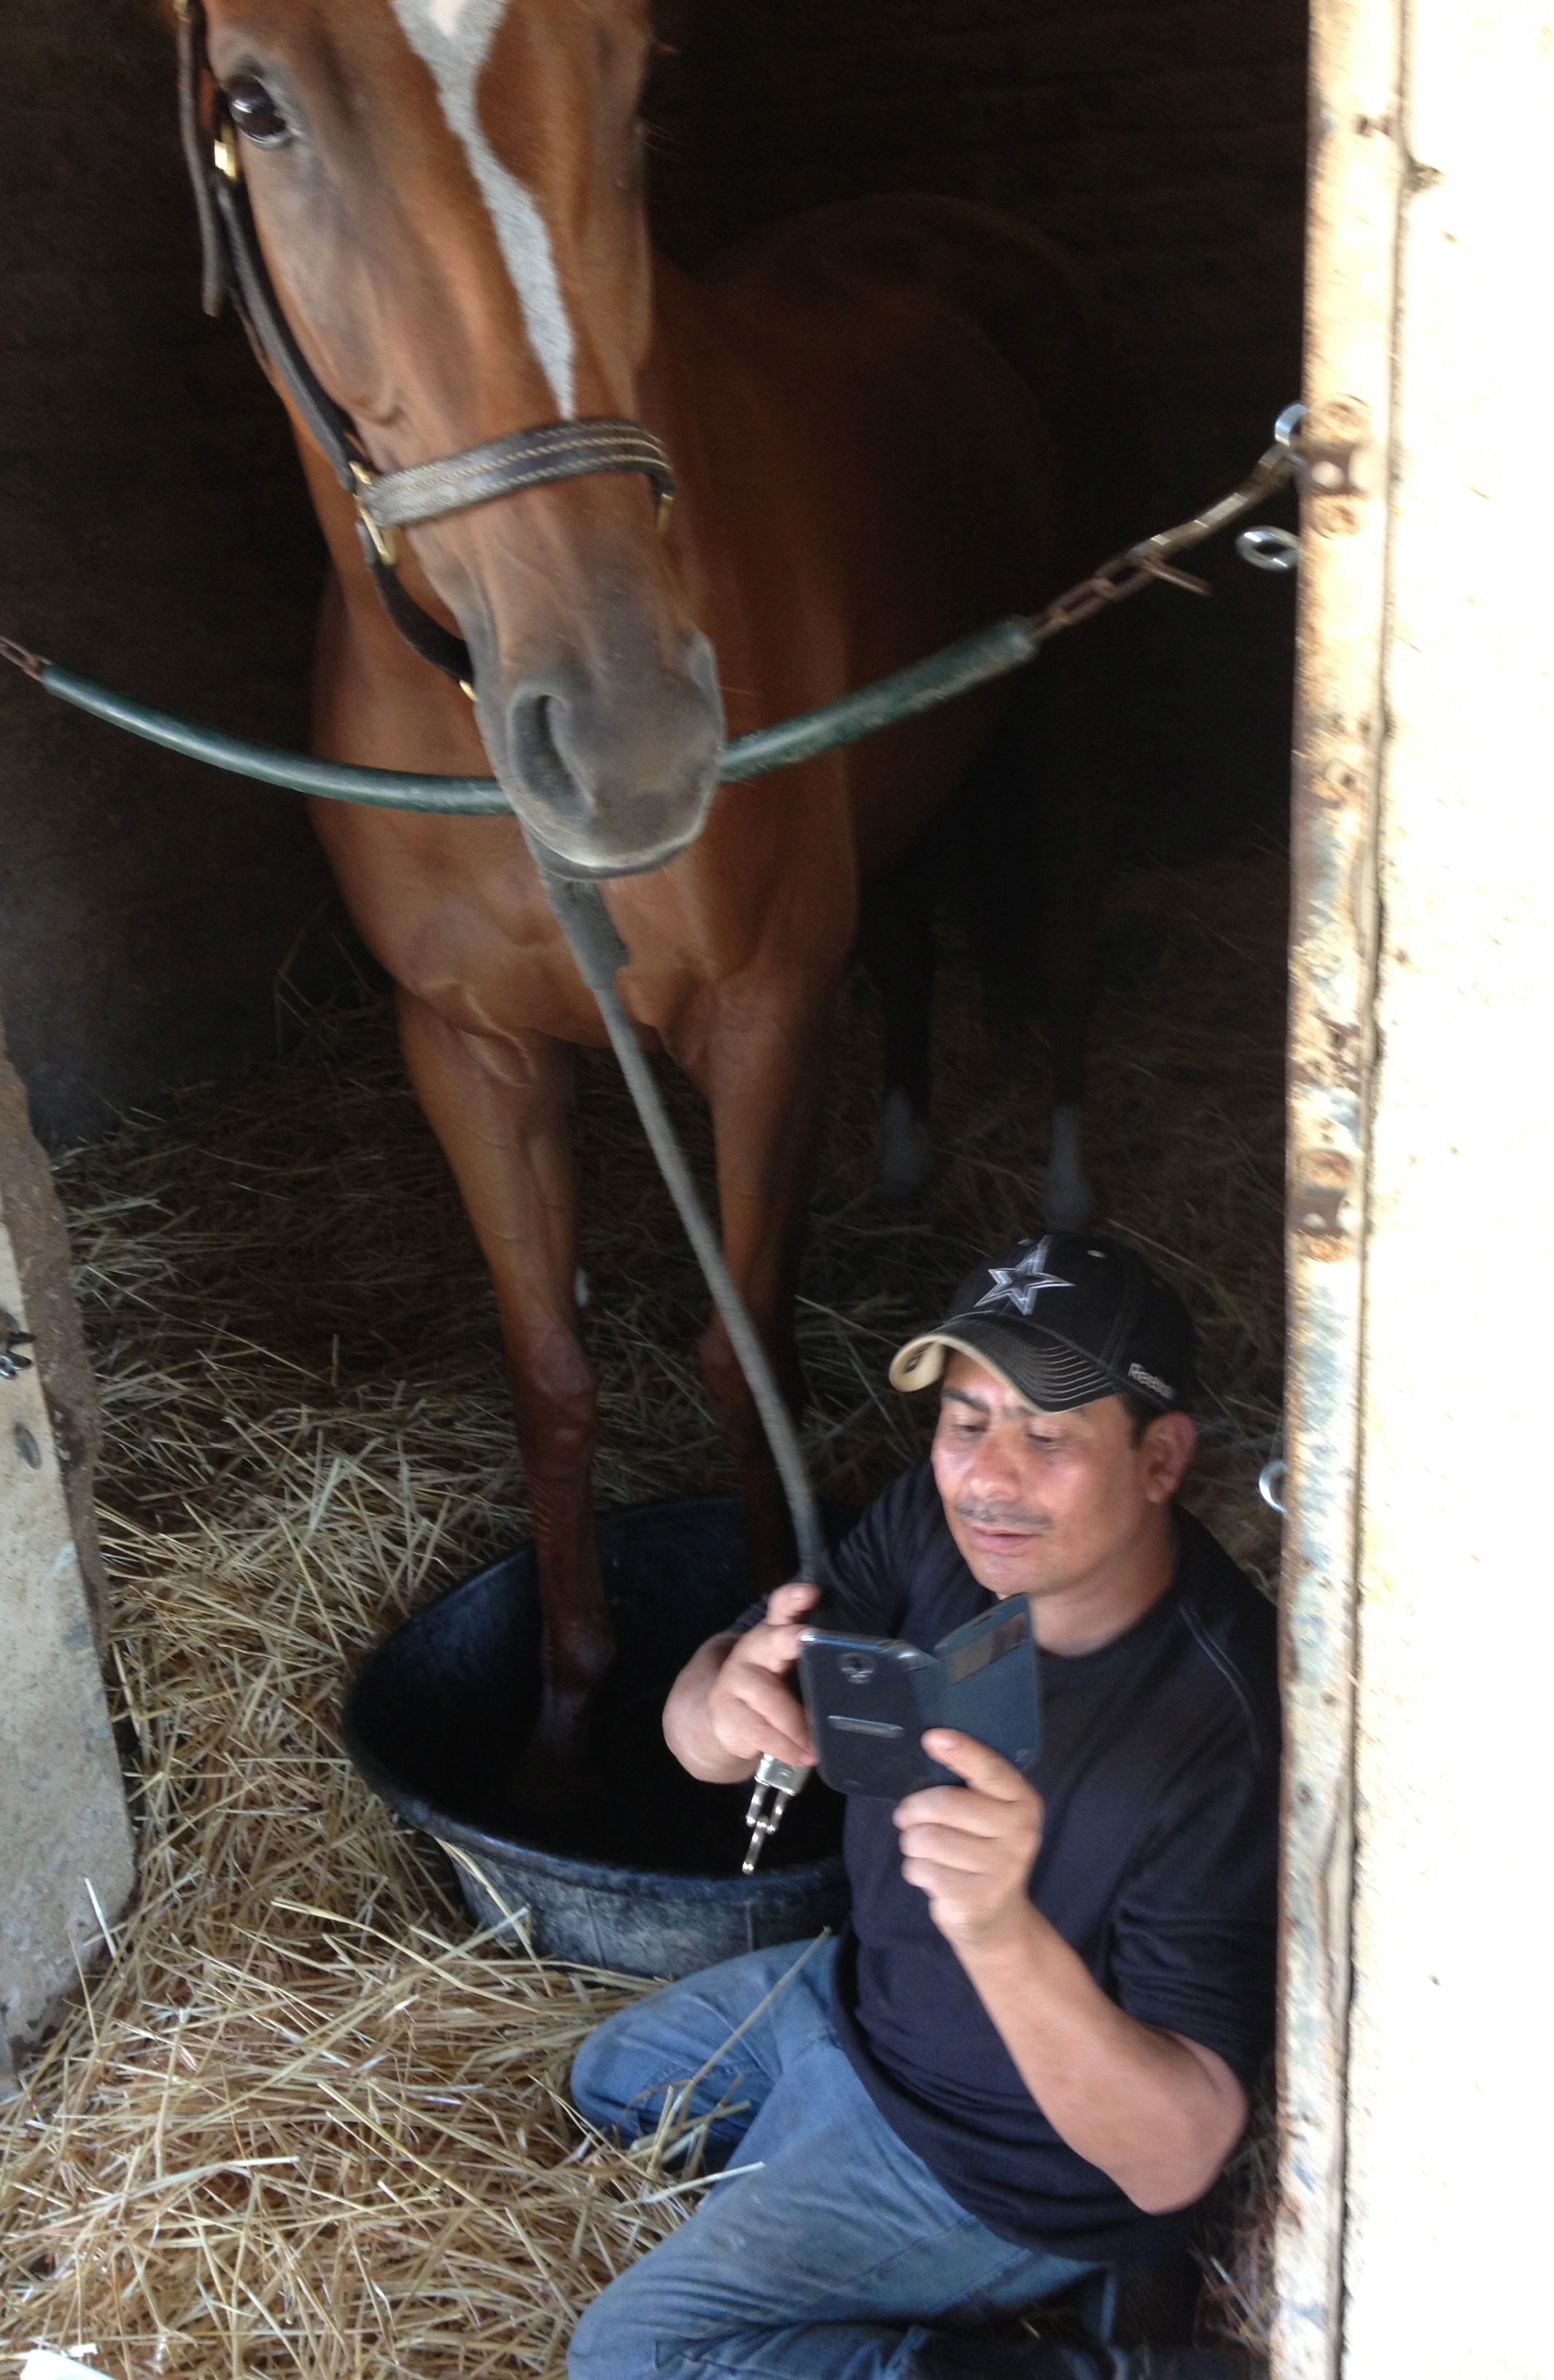 A nice foot soak for the the horse and a texting break for the groom.